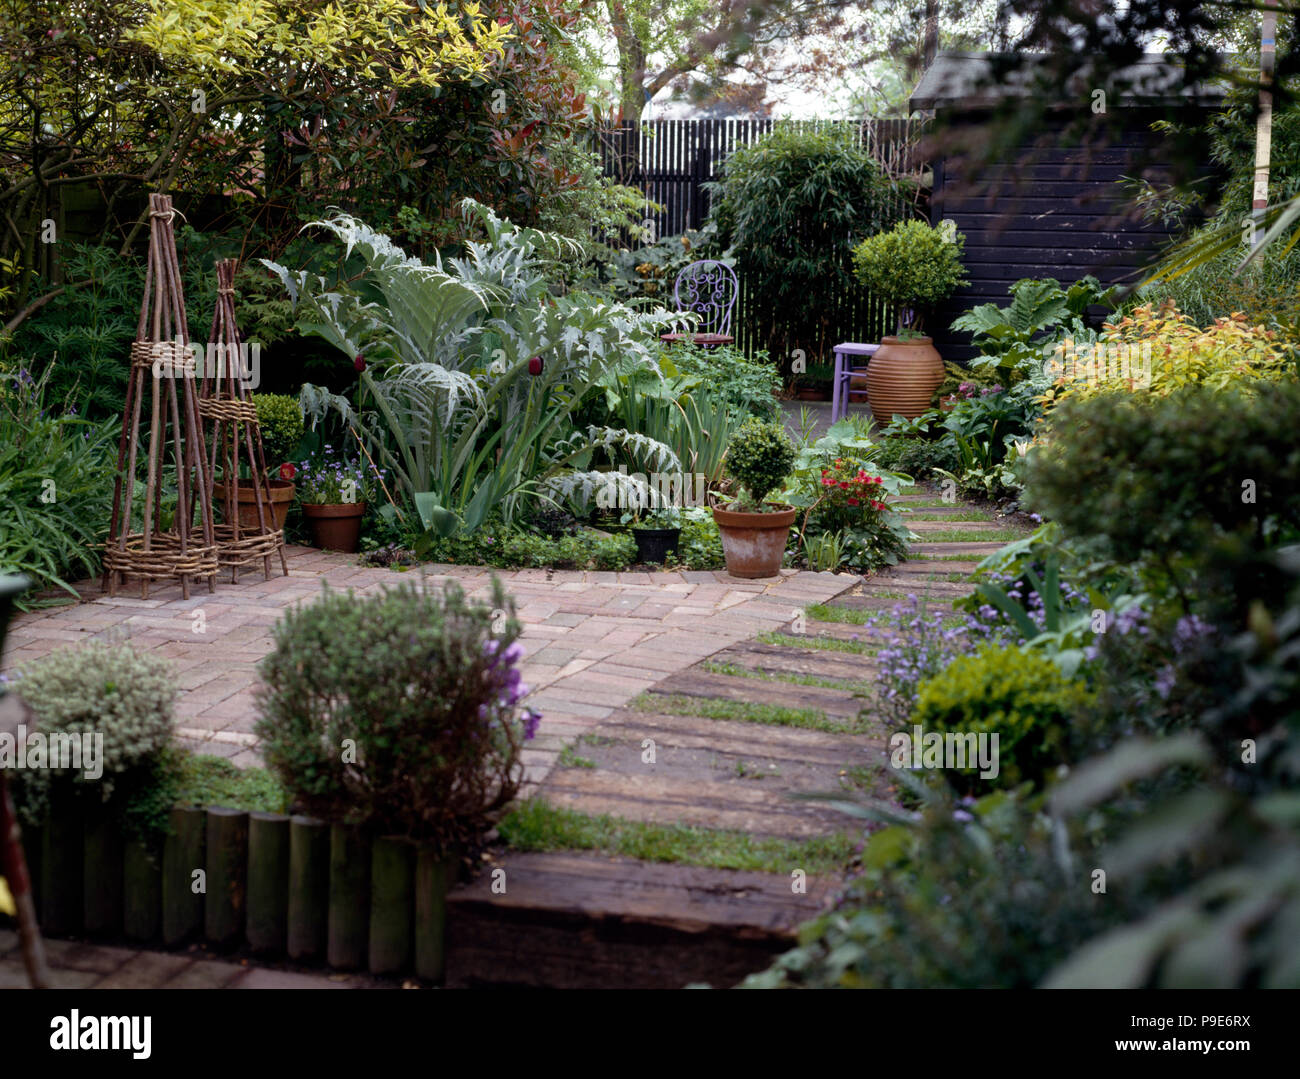 Willow Obelisks On Small Terrace In Townhouse Garden With Lush